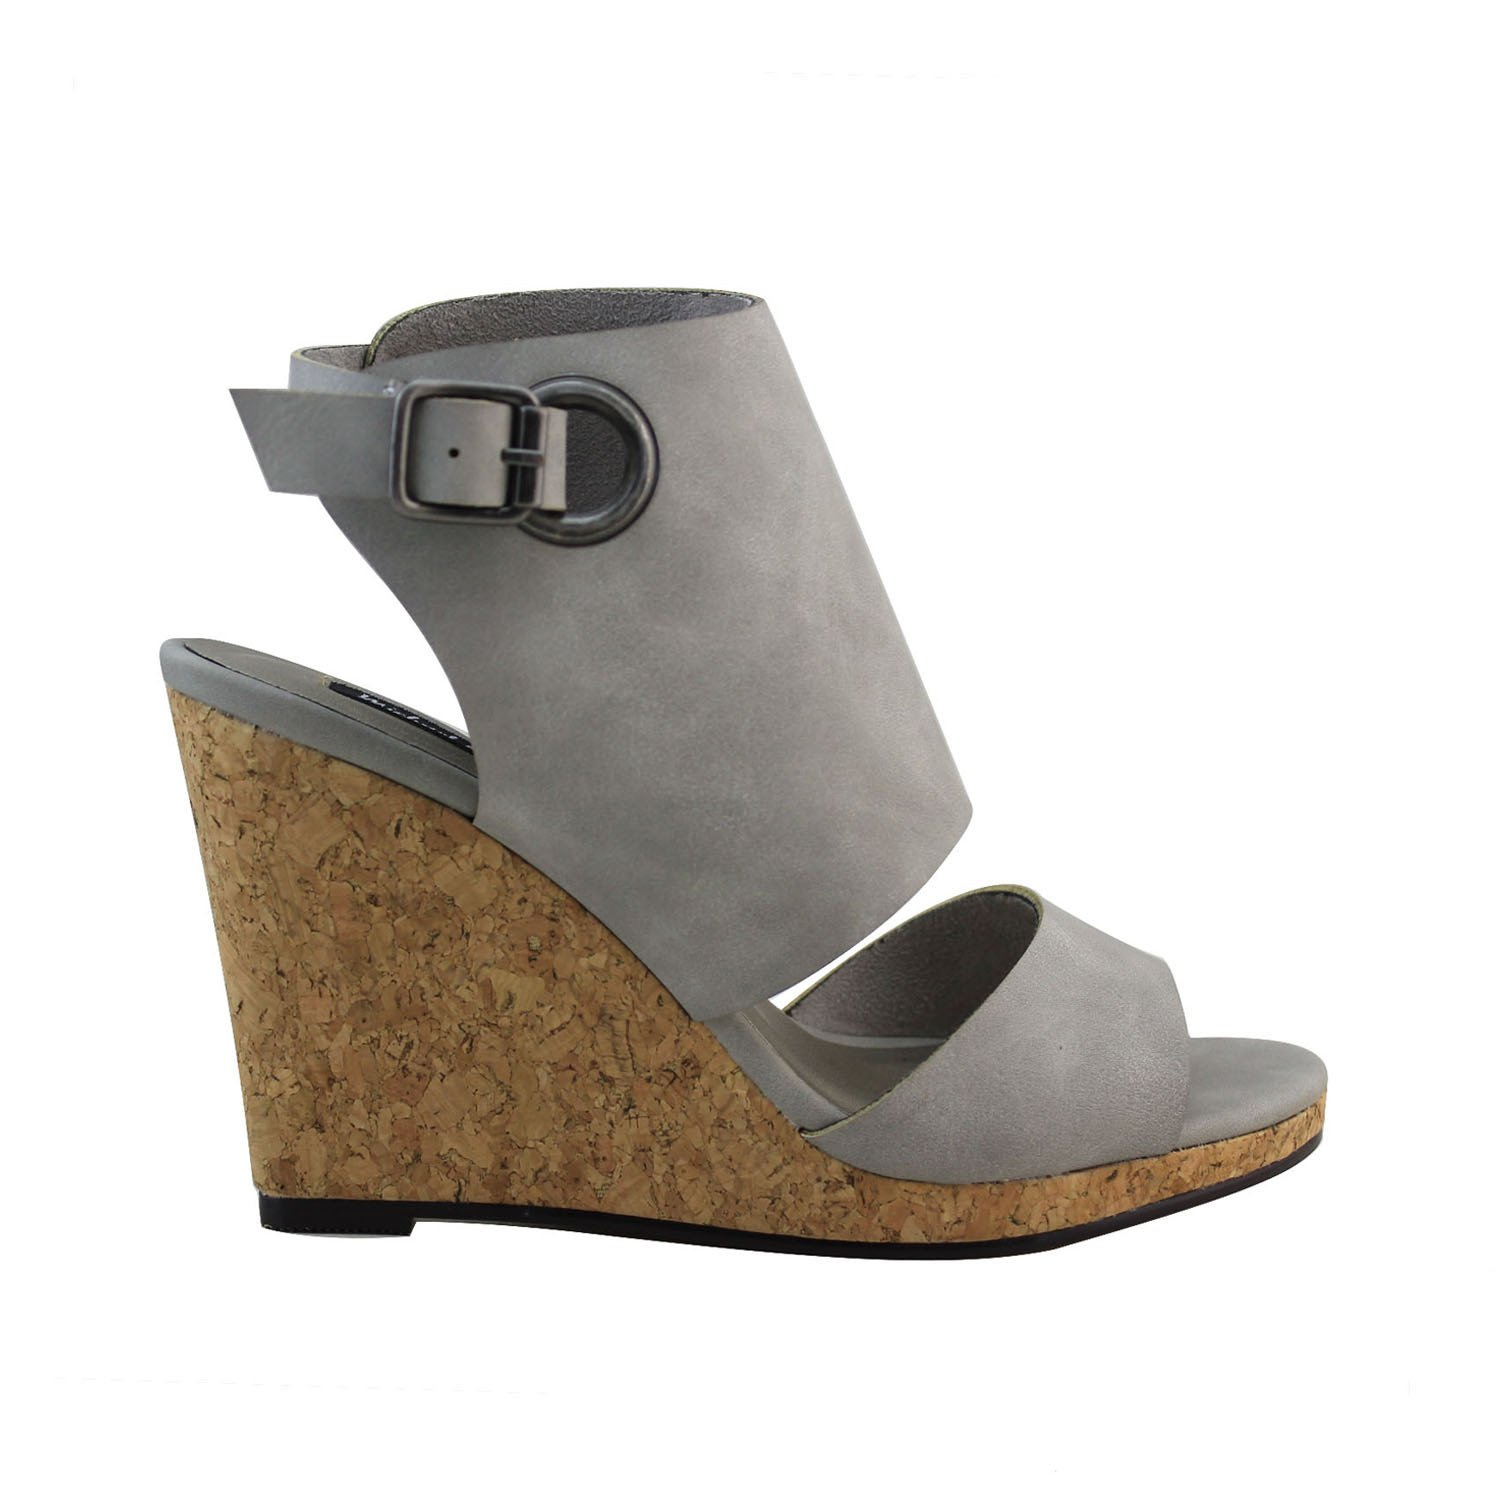 Michael Antonio Women's Gymniss Wedge Sandal B01N3SOB4U 8 B(M) US|Grey